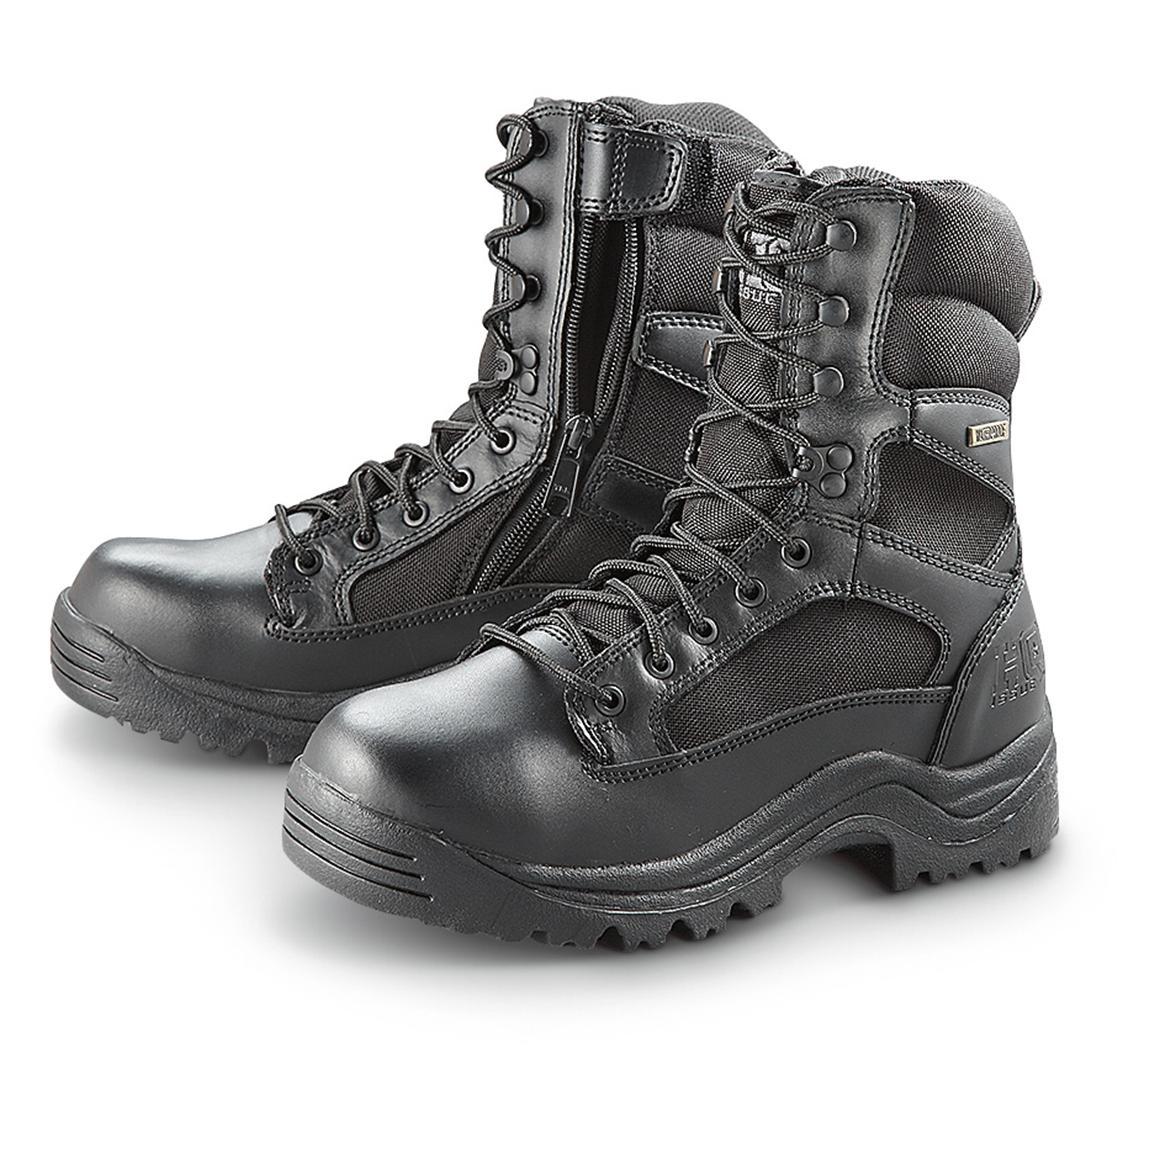 HQ ISSUE Men's Waterproof Side Zip Tactical Boots